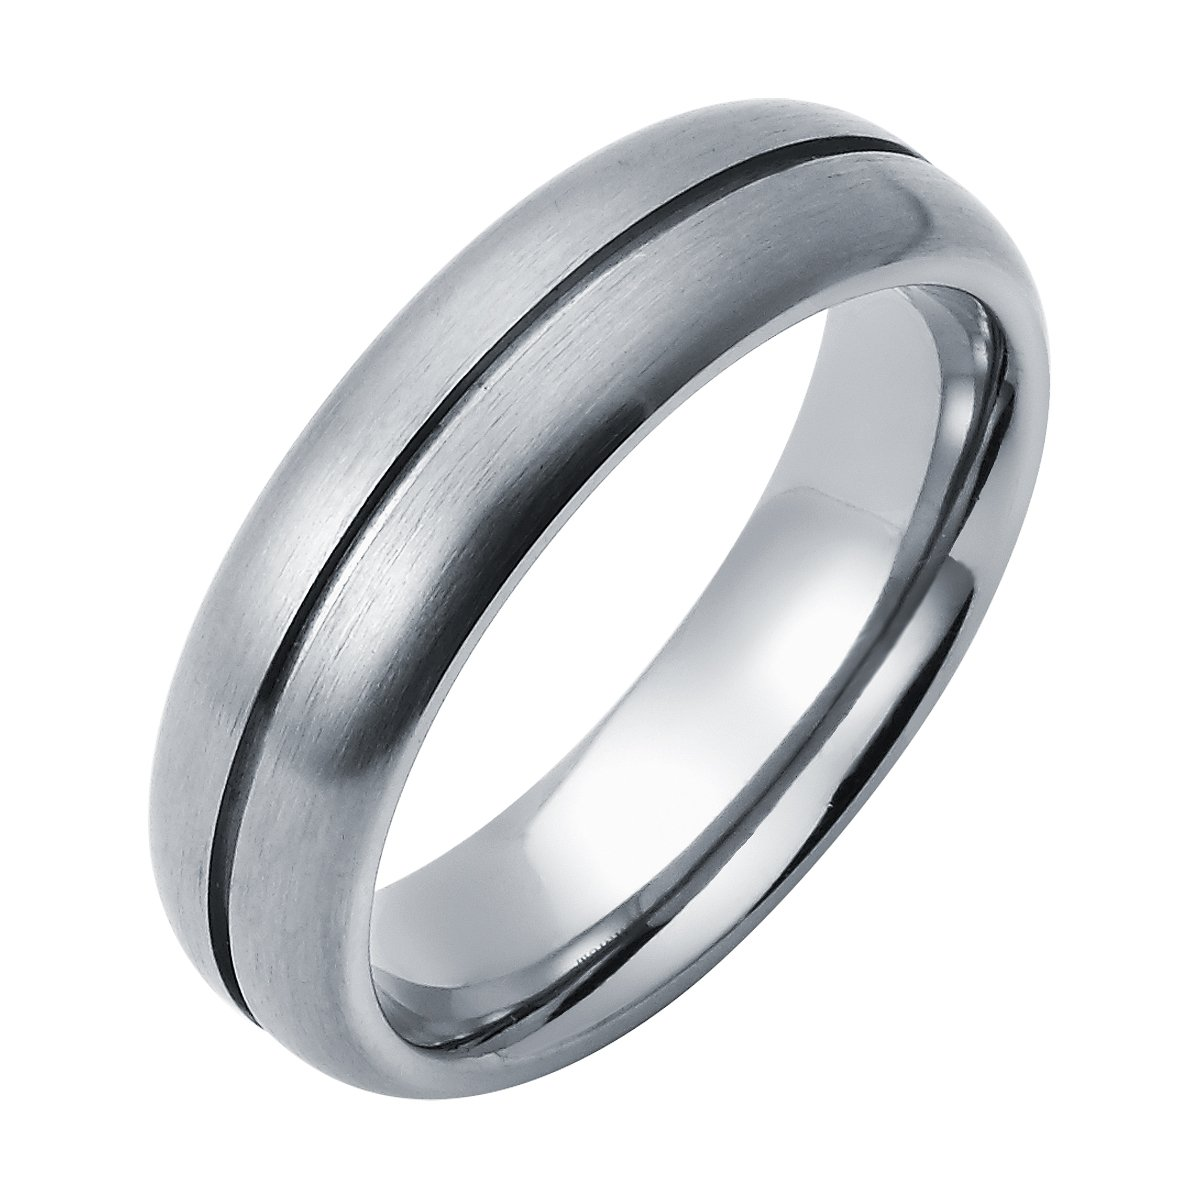 2fa8253cd18025 Boston Bay Diamonds Men's 6MM Comfort Fit Titanium Wedding Band Ring with  Center Channel Accent | Amazon.com